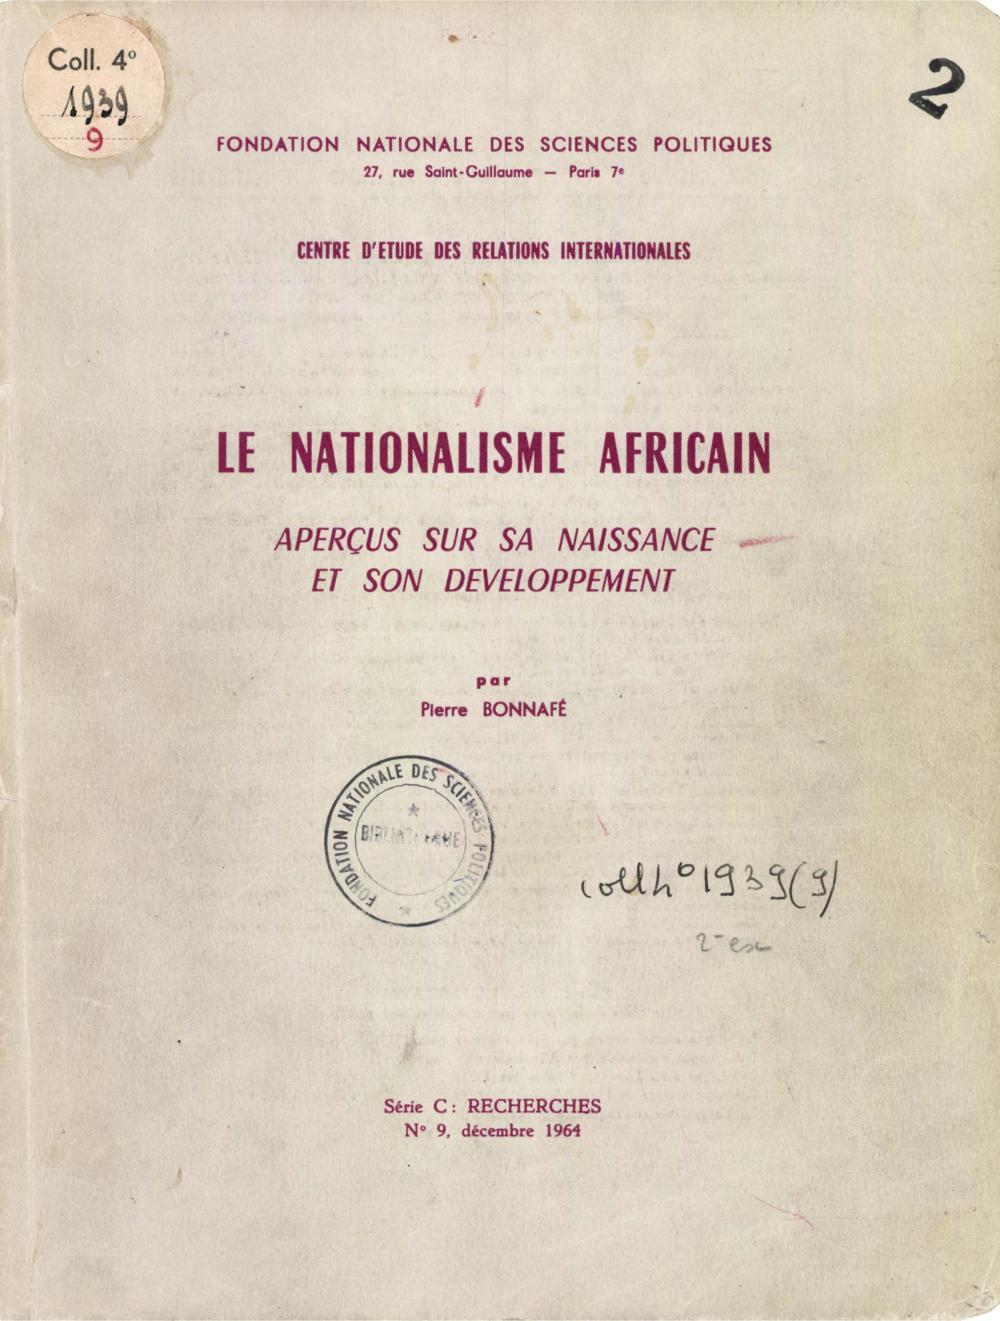 Le nationalisme africain